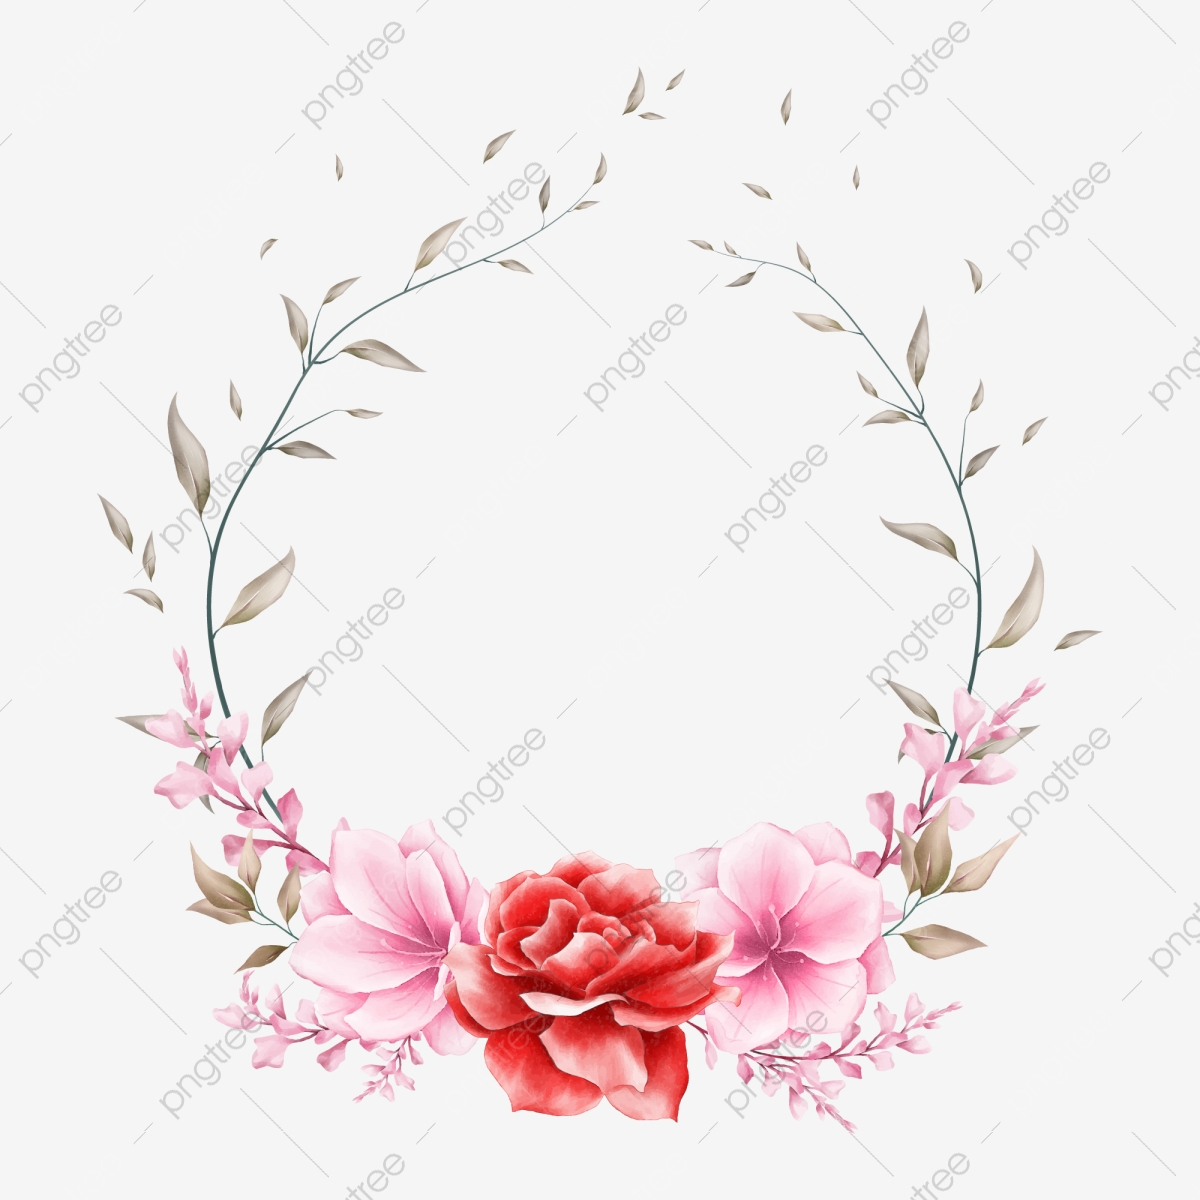 https pngtree com freepng beautiful watercolor floral wreath for wedding invitation cards 4860855 html